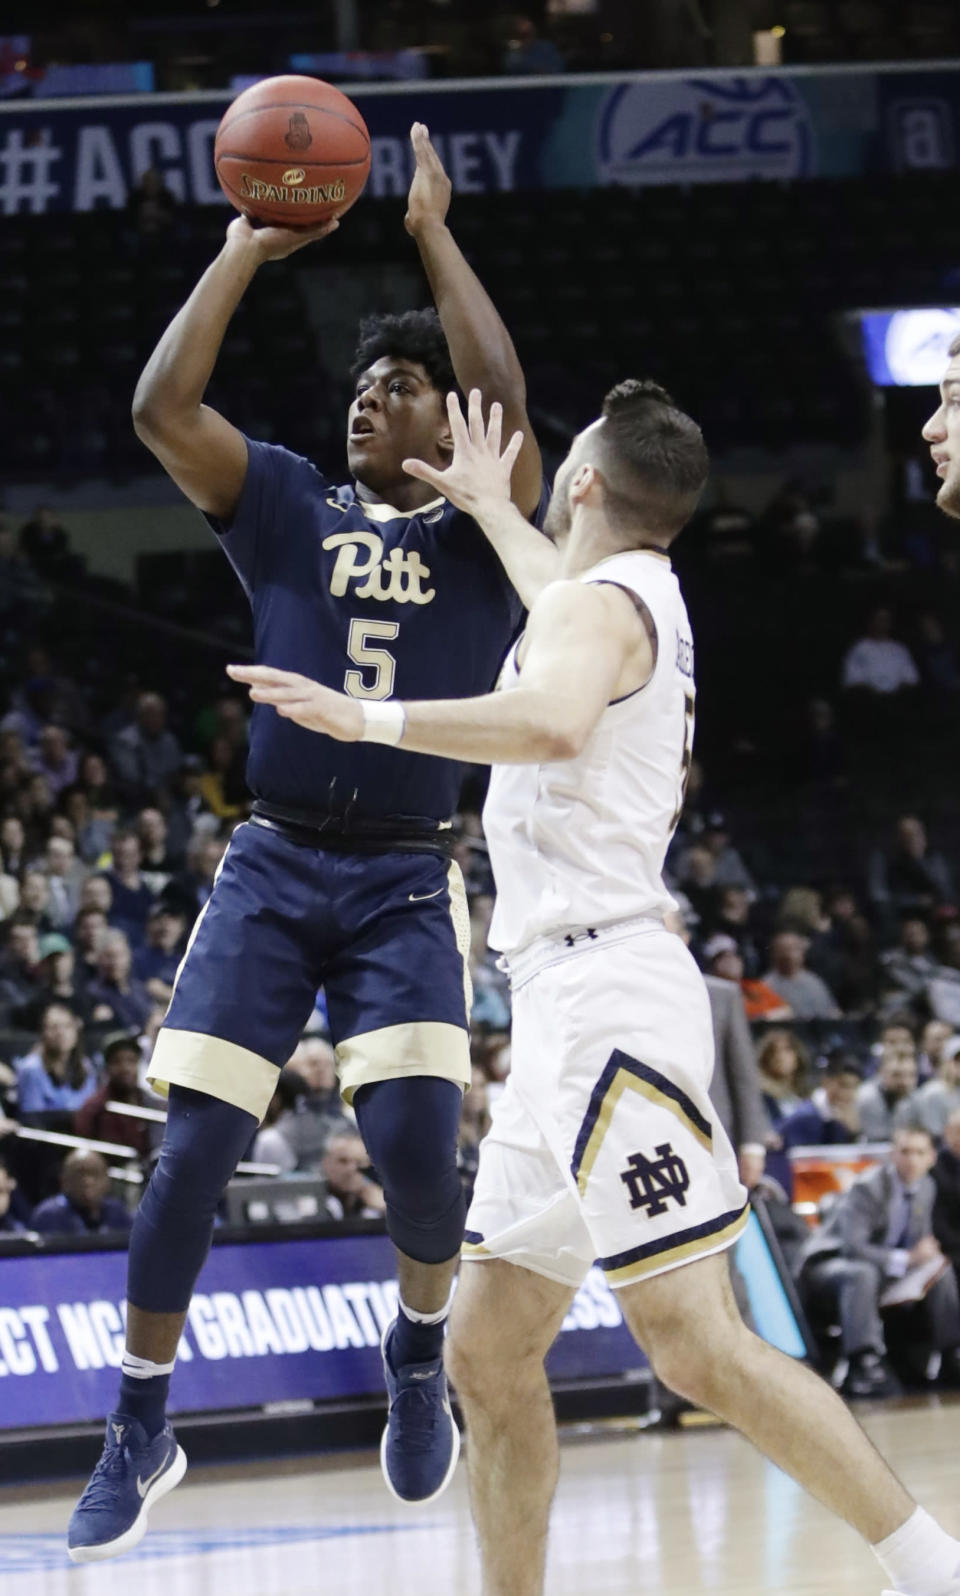 Pittsburgh's Marcus Carr (5) shoots over Notre Dame's Matt Farrell during the first half of an NCAA college basketball game in the first round of the Atlantic Coast Conference tournament Tuesday, March 6, 2018, in New York. (AP Photo/Frank Franklin II)